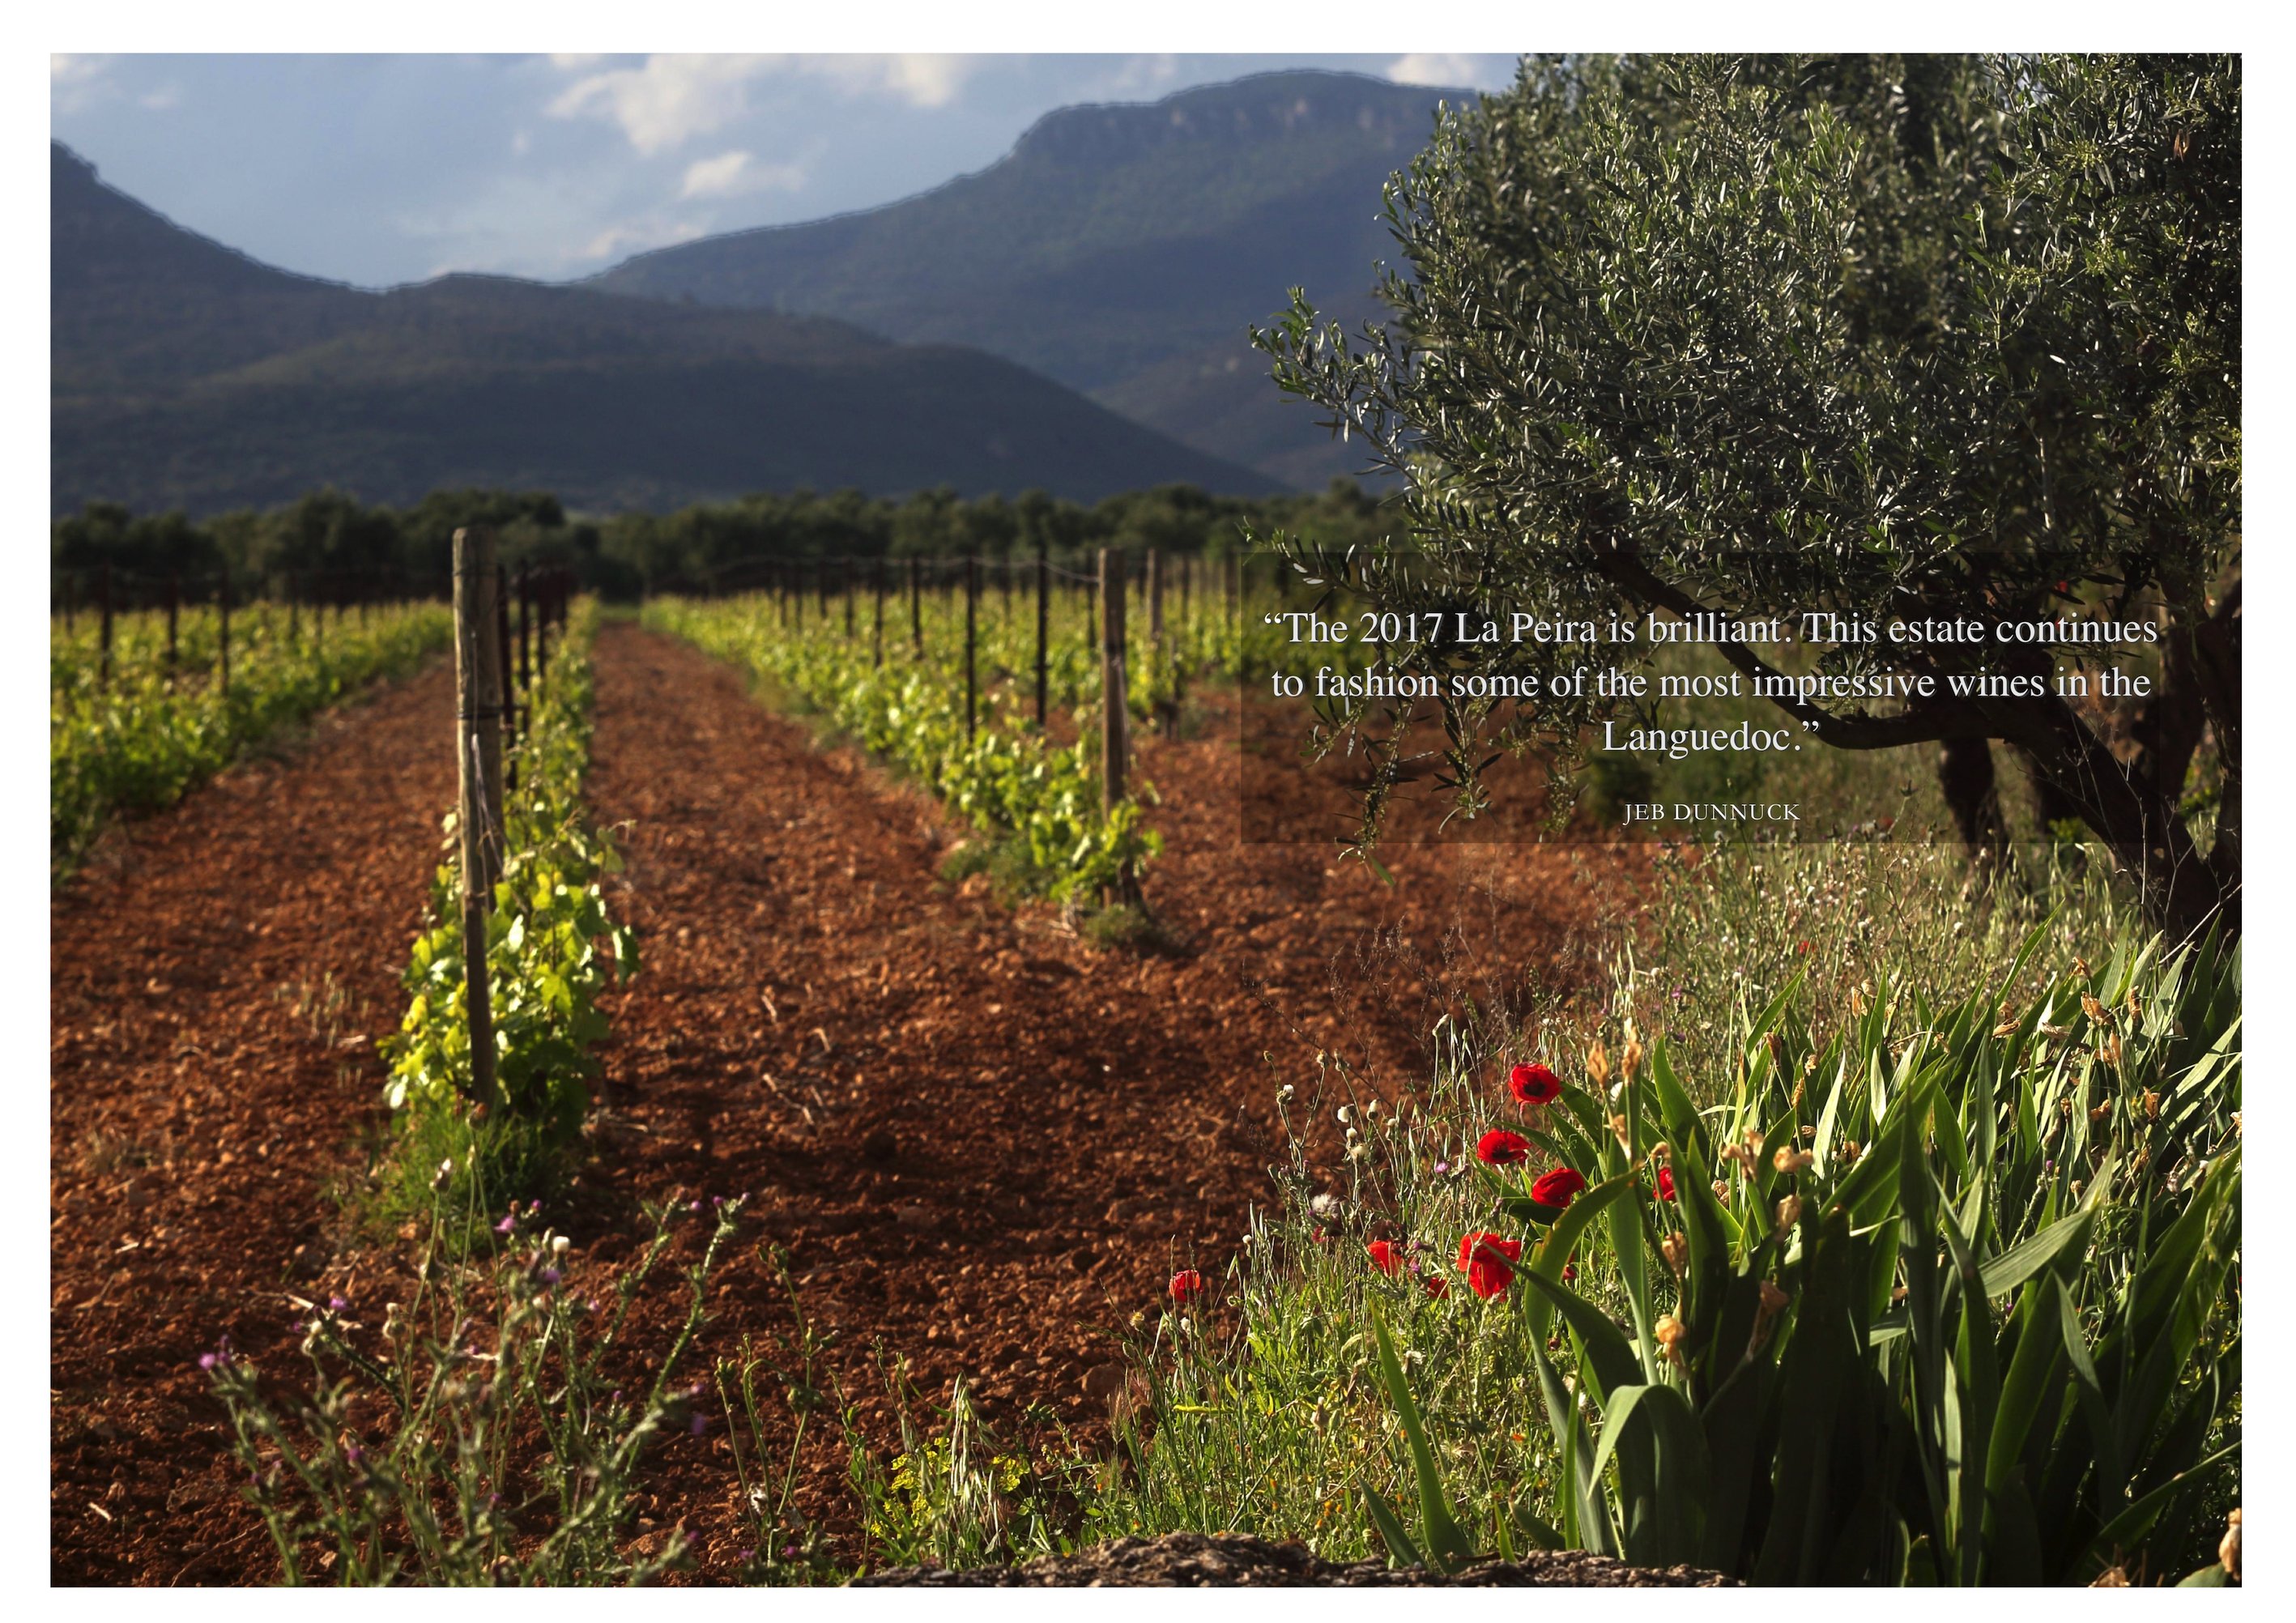 La Peira Vineyards | A Top Estate in France since 2004